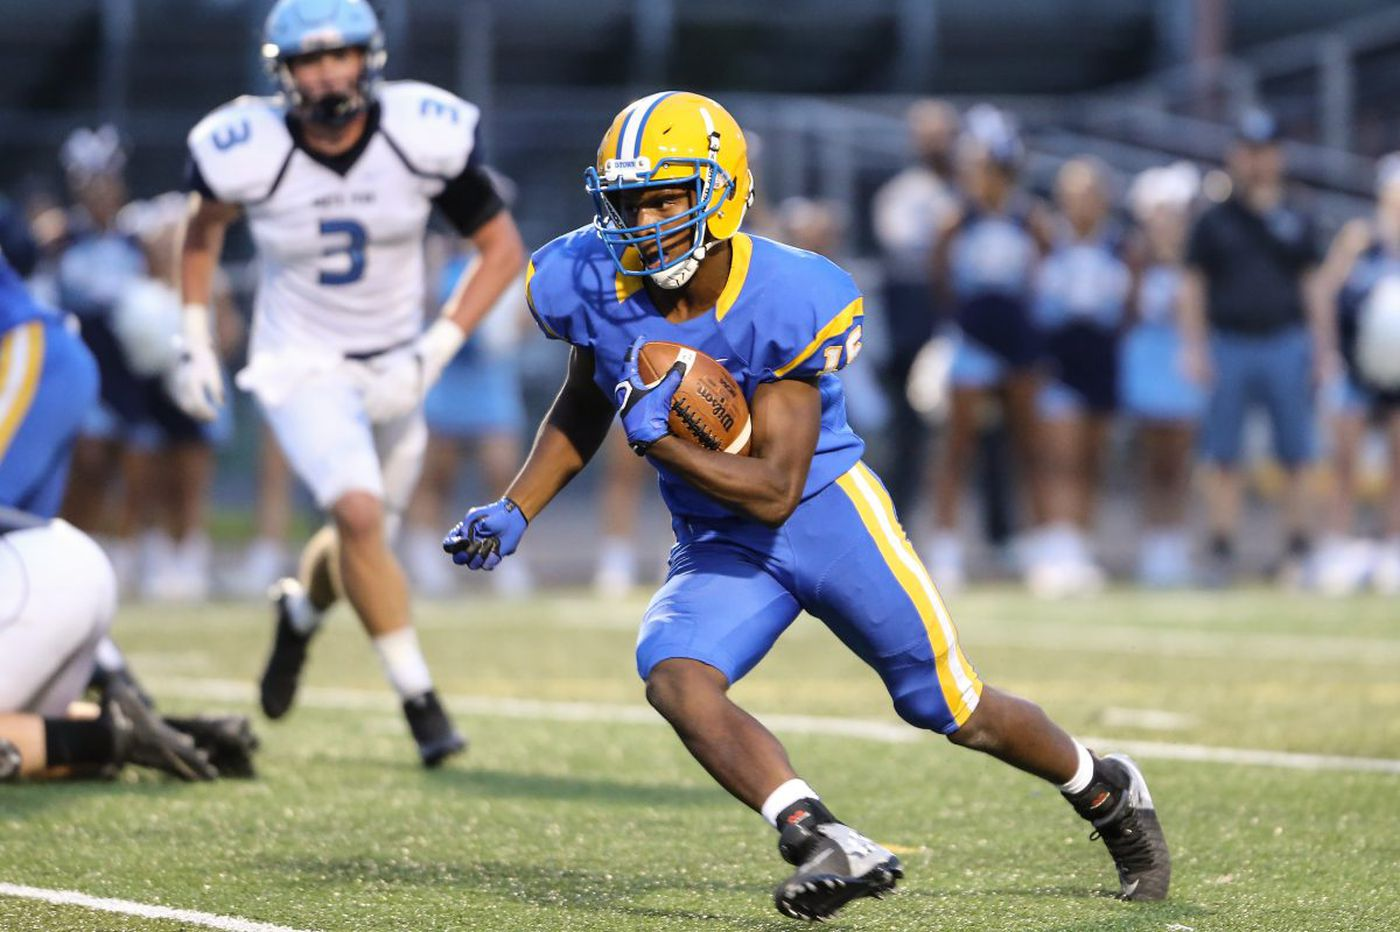 Southeastern Pa. football playoff schedule for Week 12